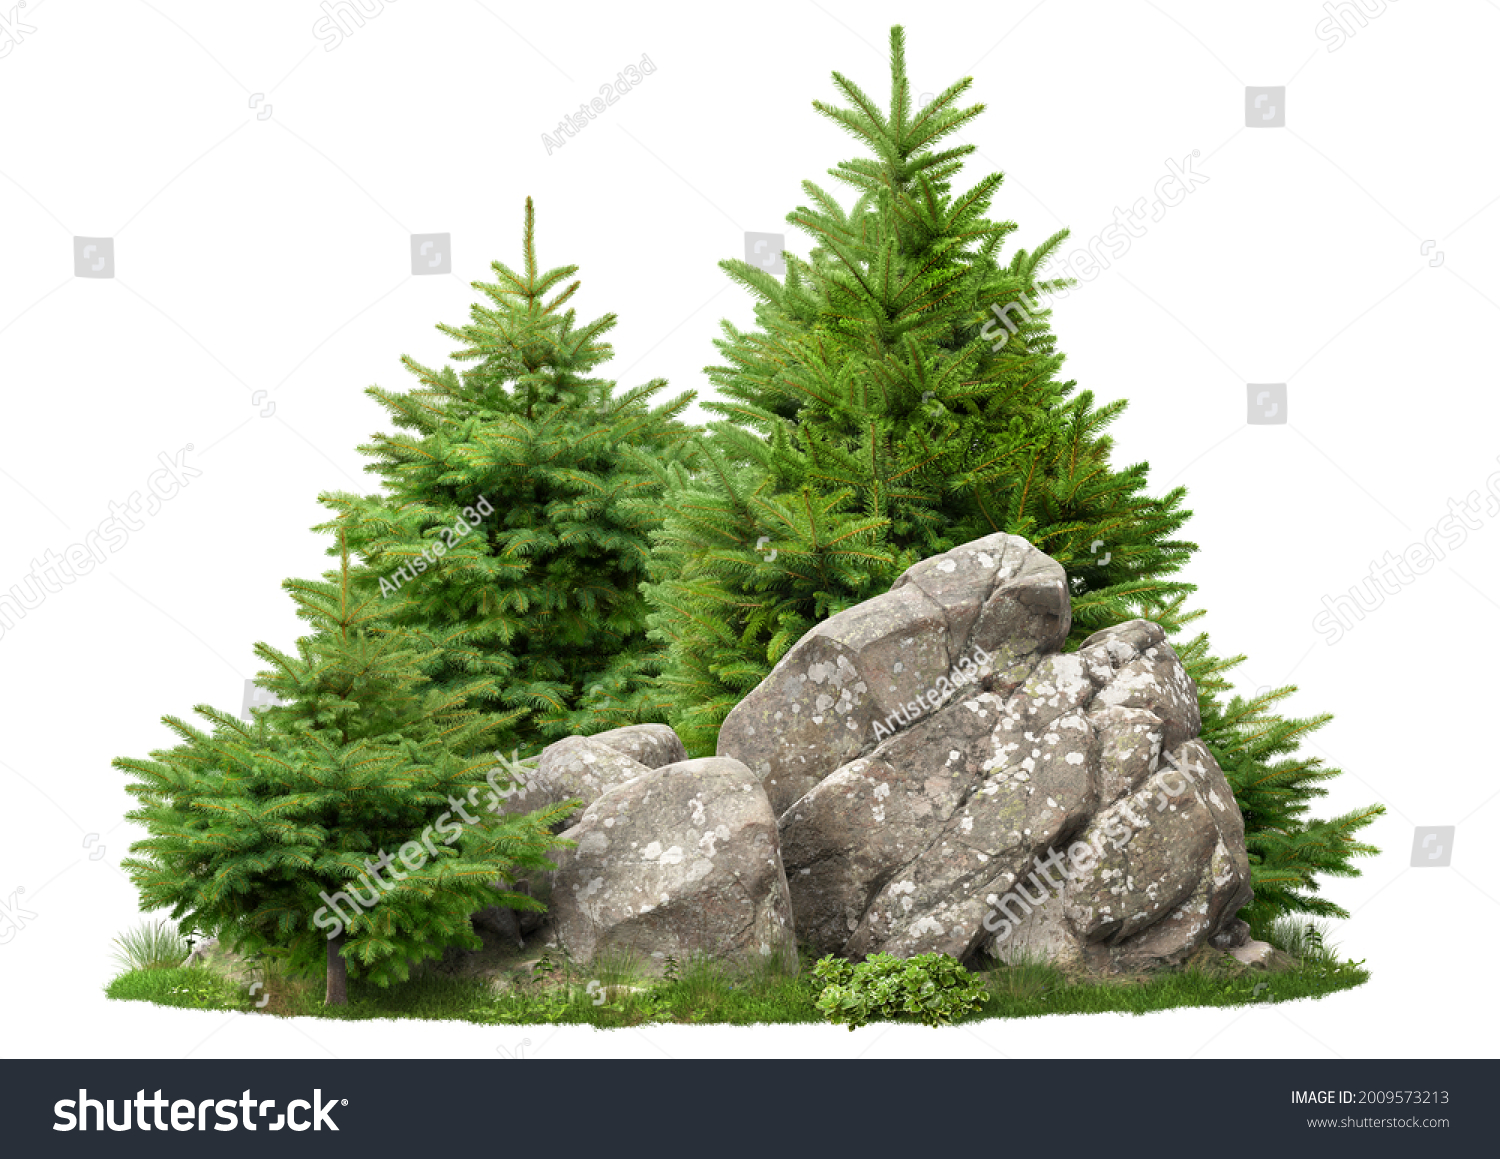 Cutout rock surrounded by fir trees. Garden design isolated on white background. Decorative shrub for landscaping. High quality clipping mask for professionnal composition #2009573213